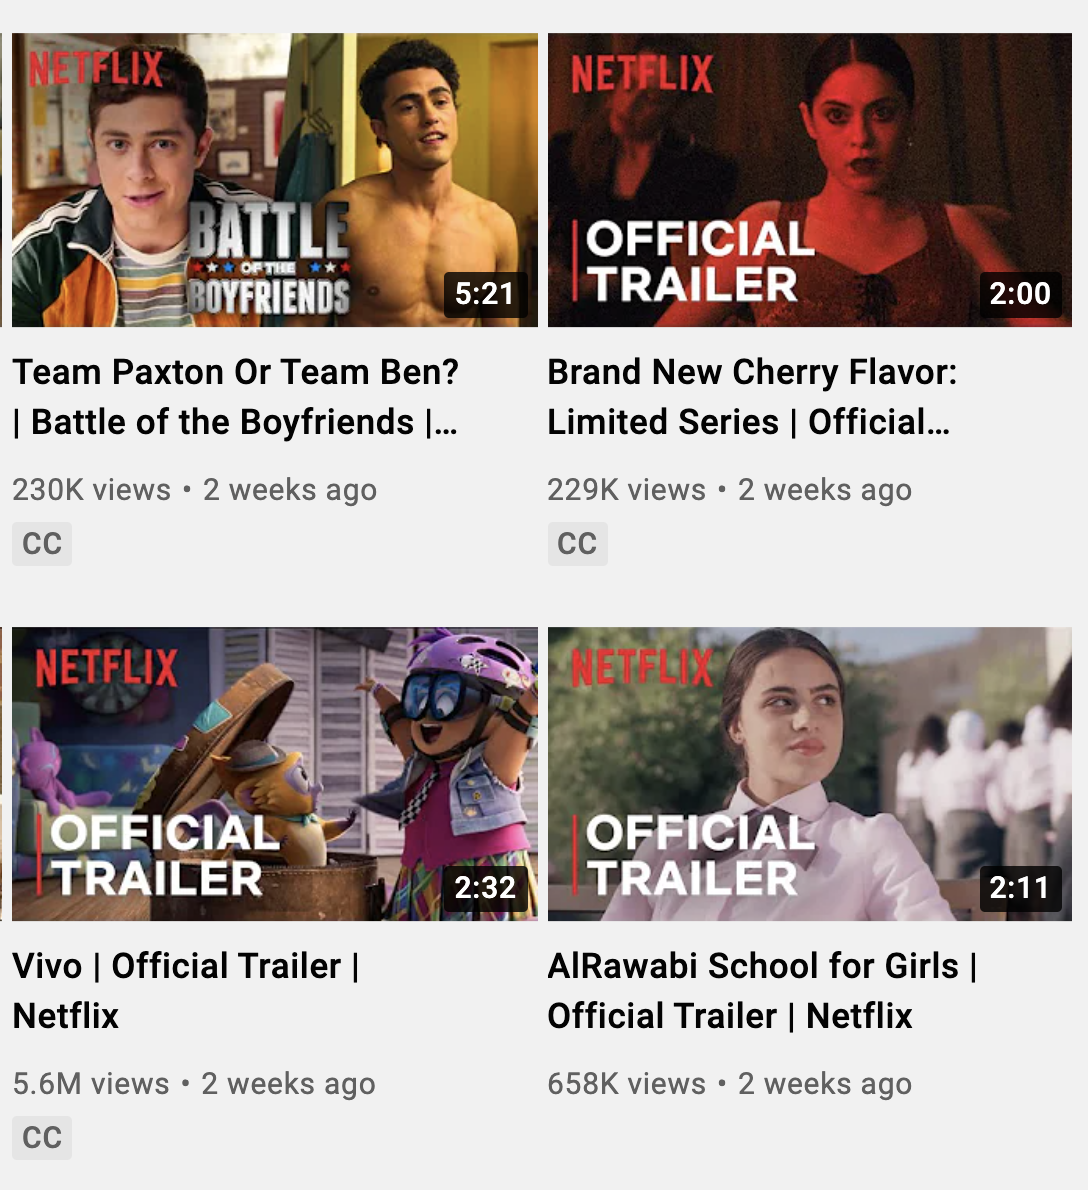 netflix trailers on their youtube channel